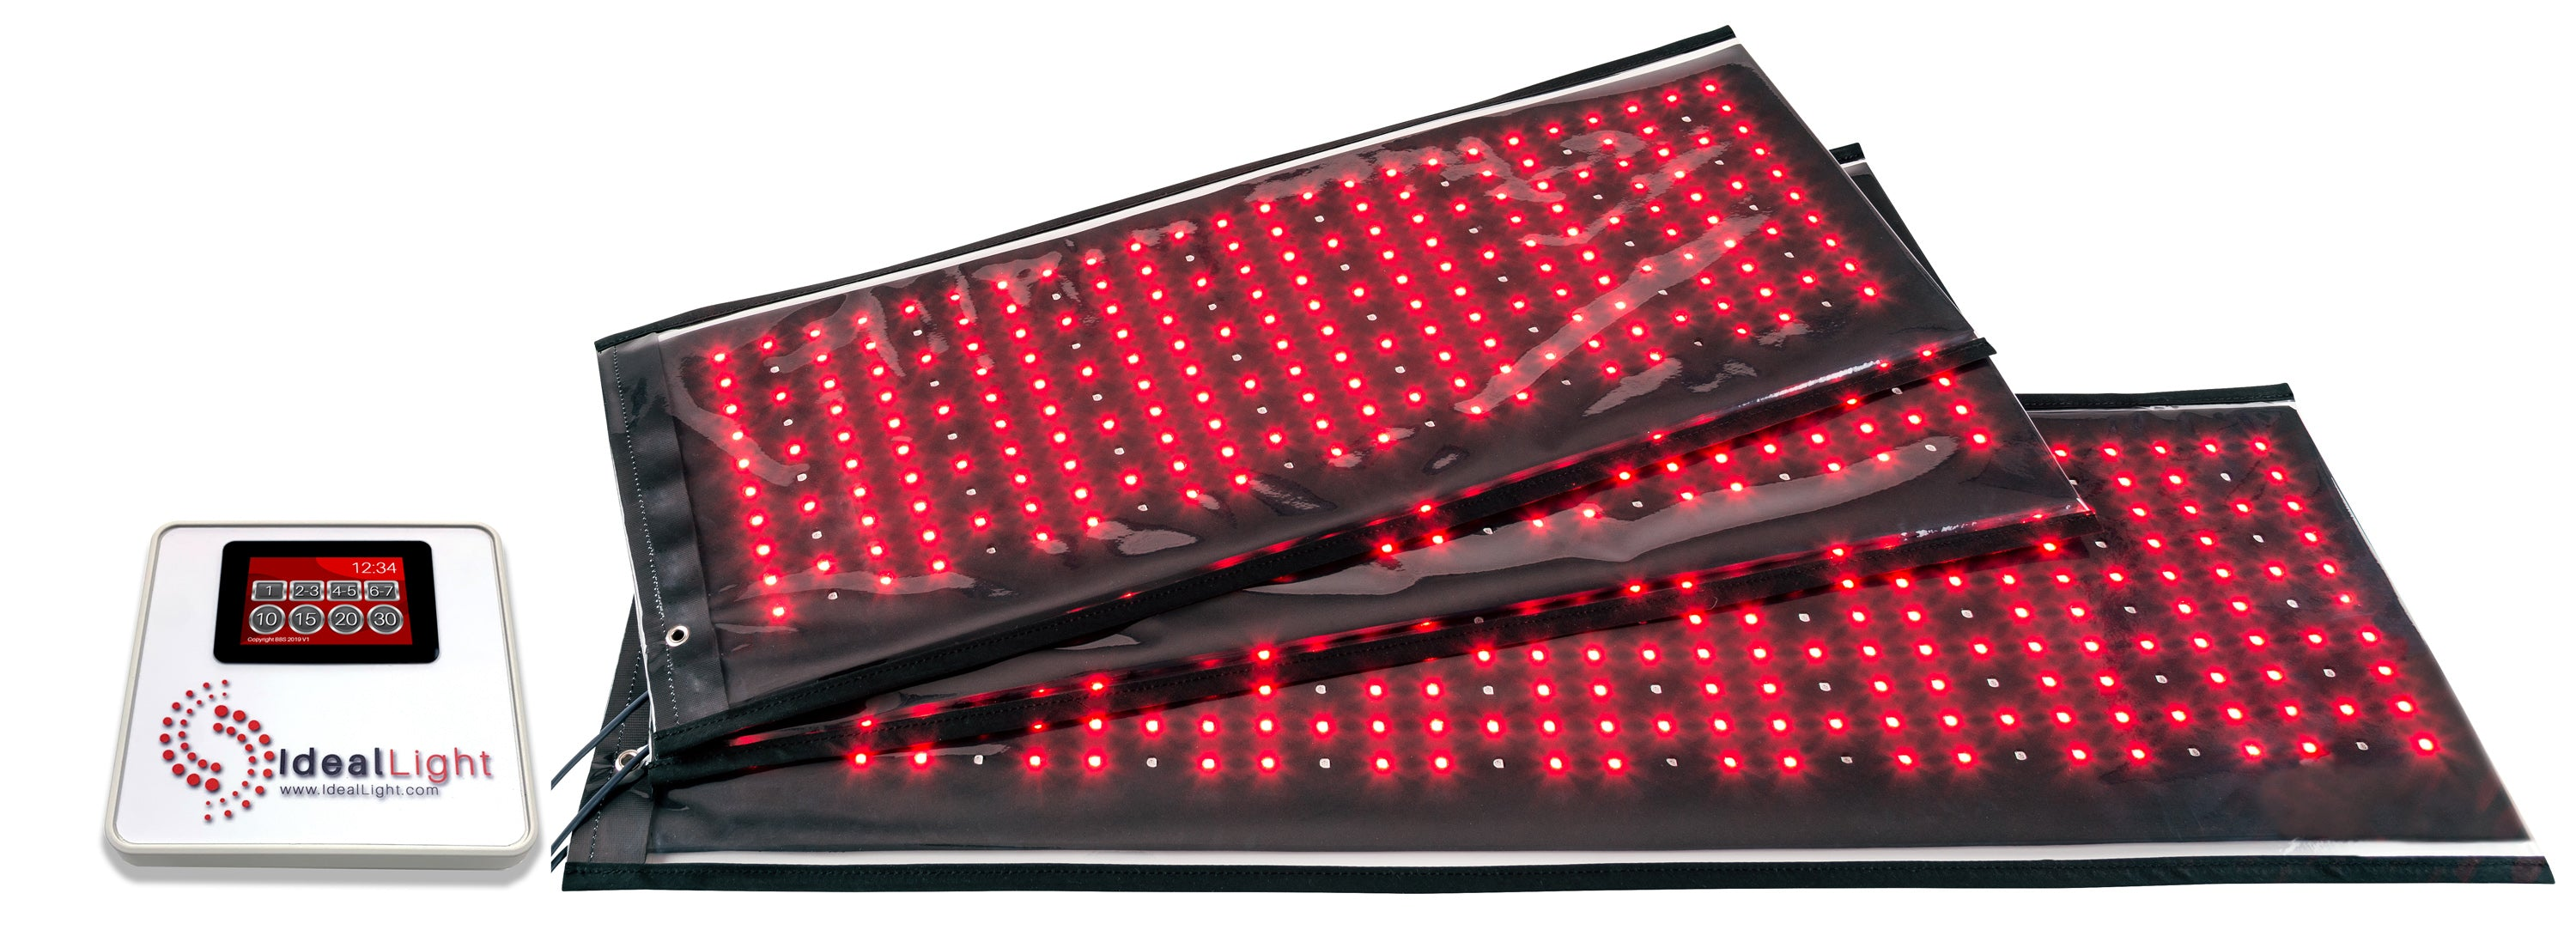 Ideal Light 3 pad professional and home use red light therapy system for pain relief and  red light body contouring